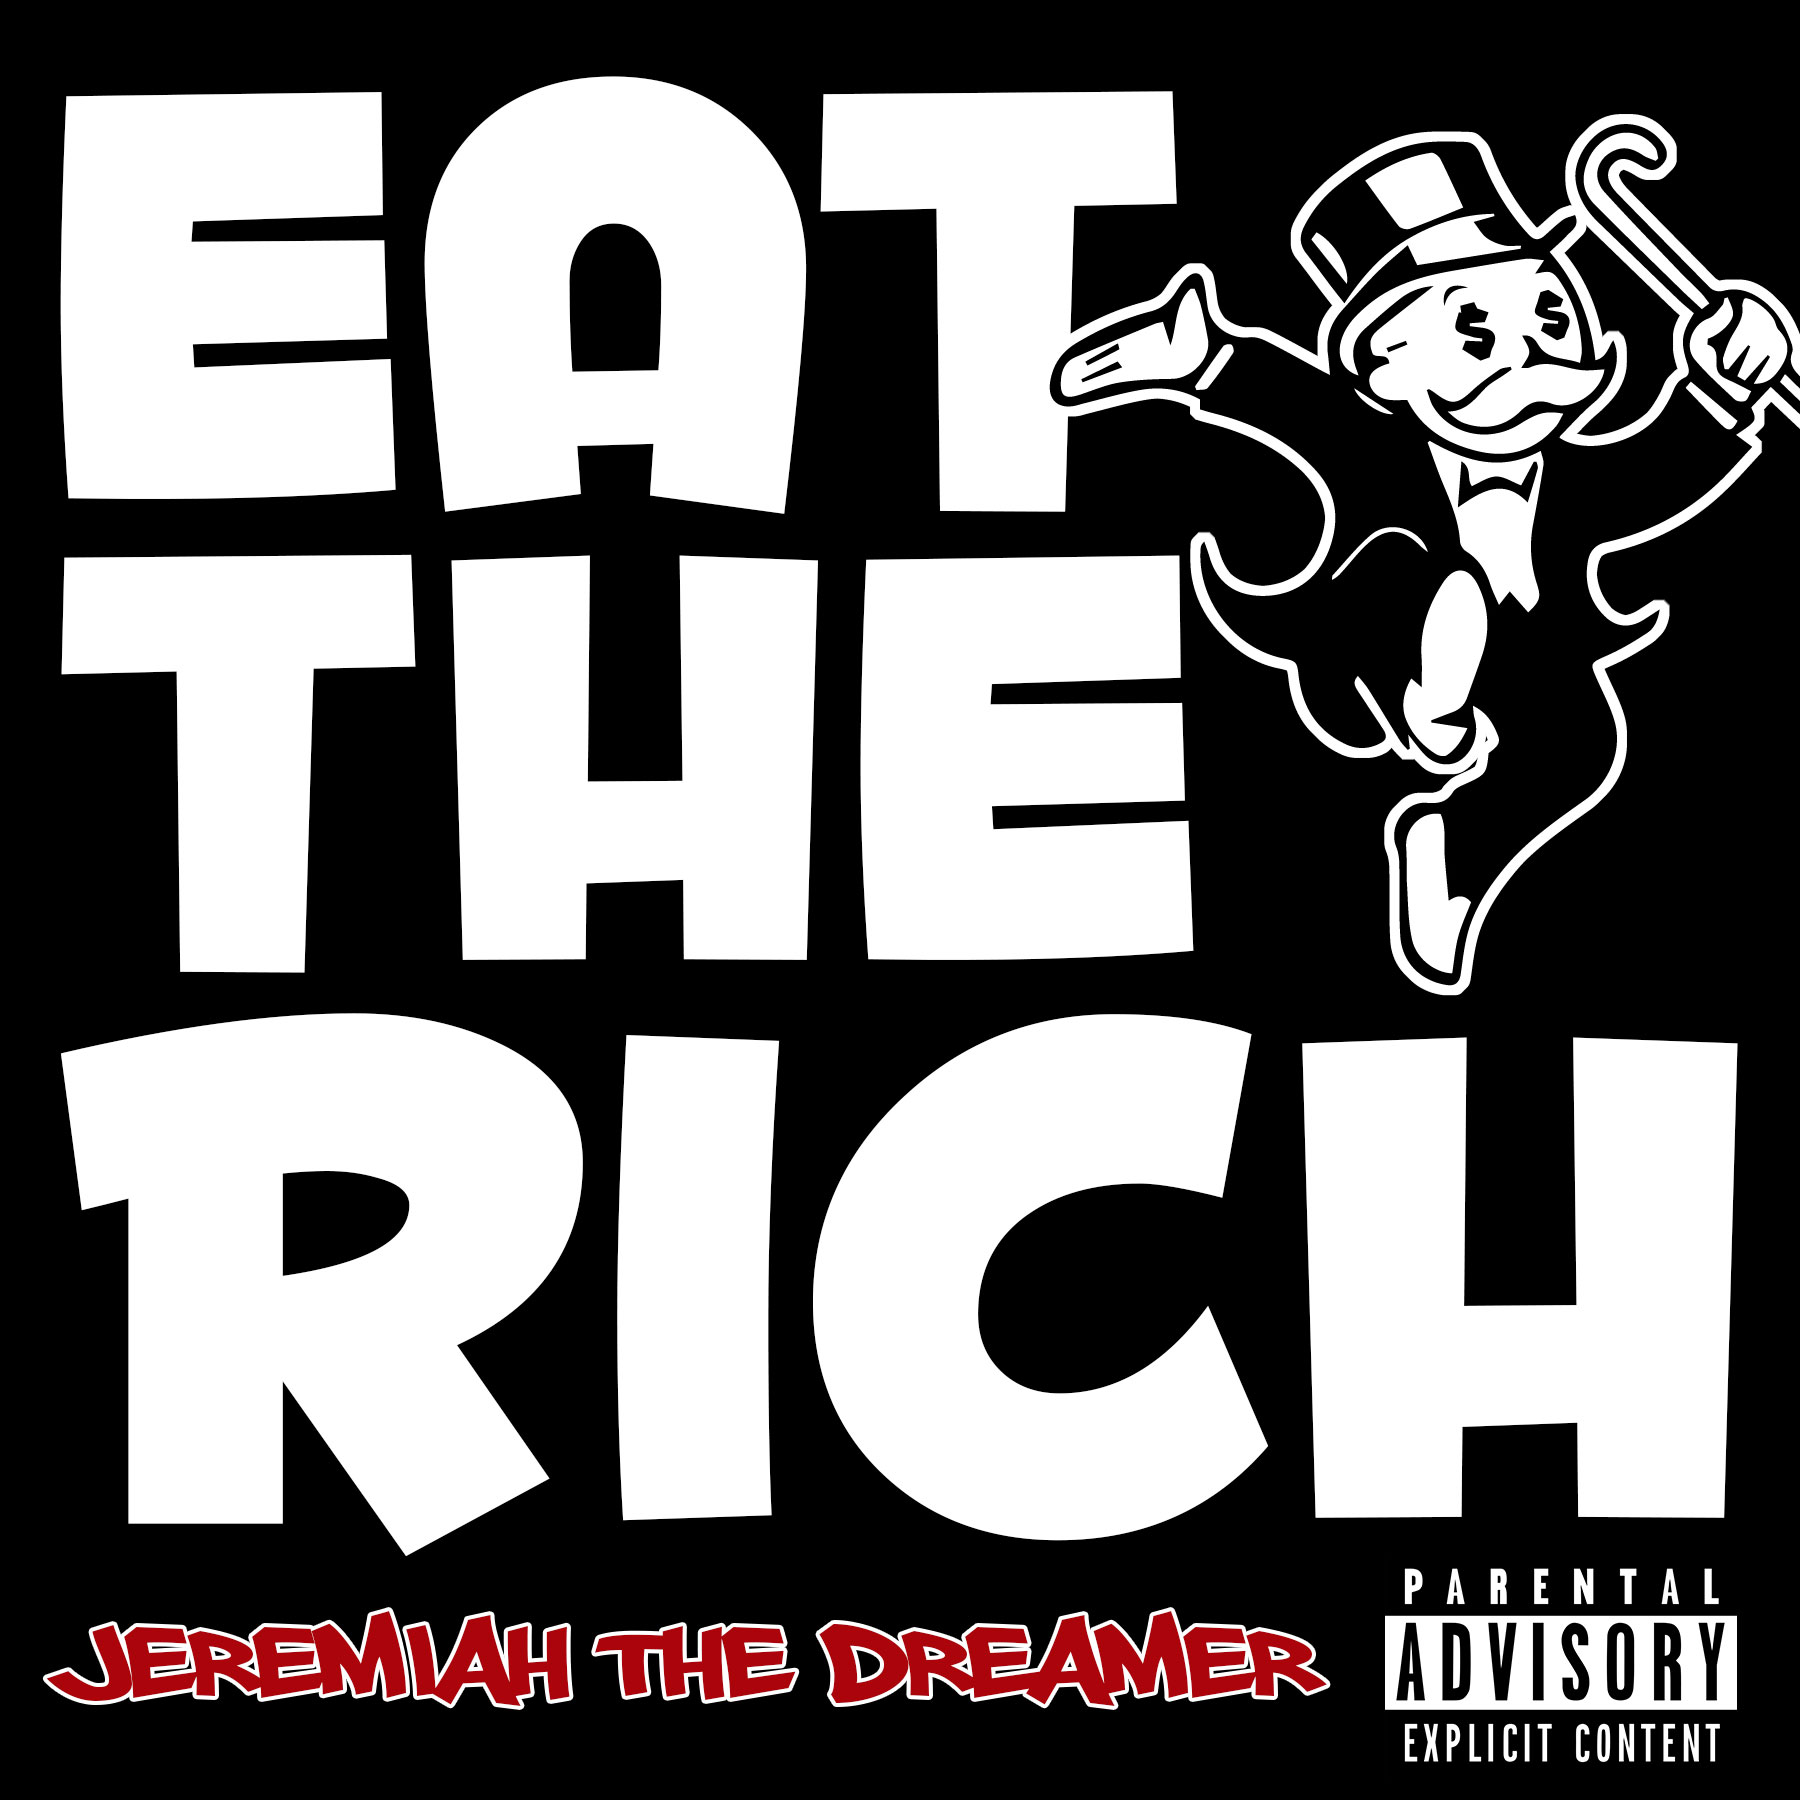 Eat the Rich by Jeremiah the Dreamer